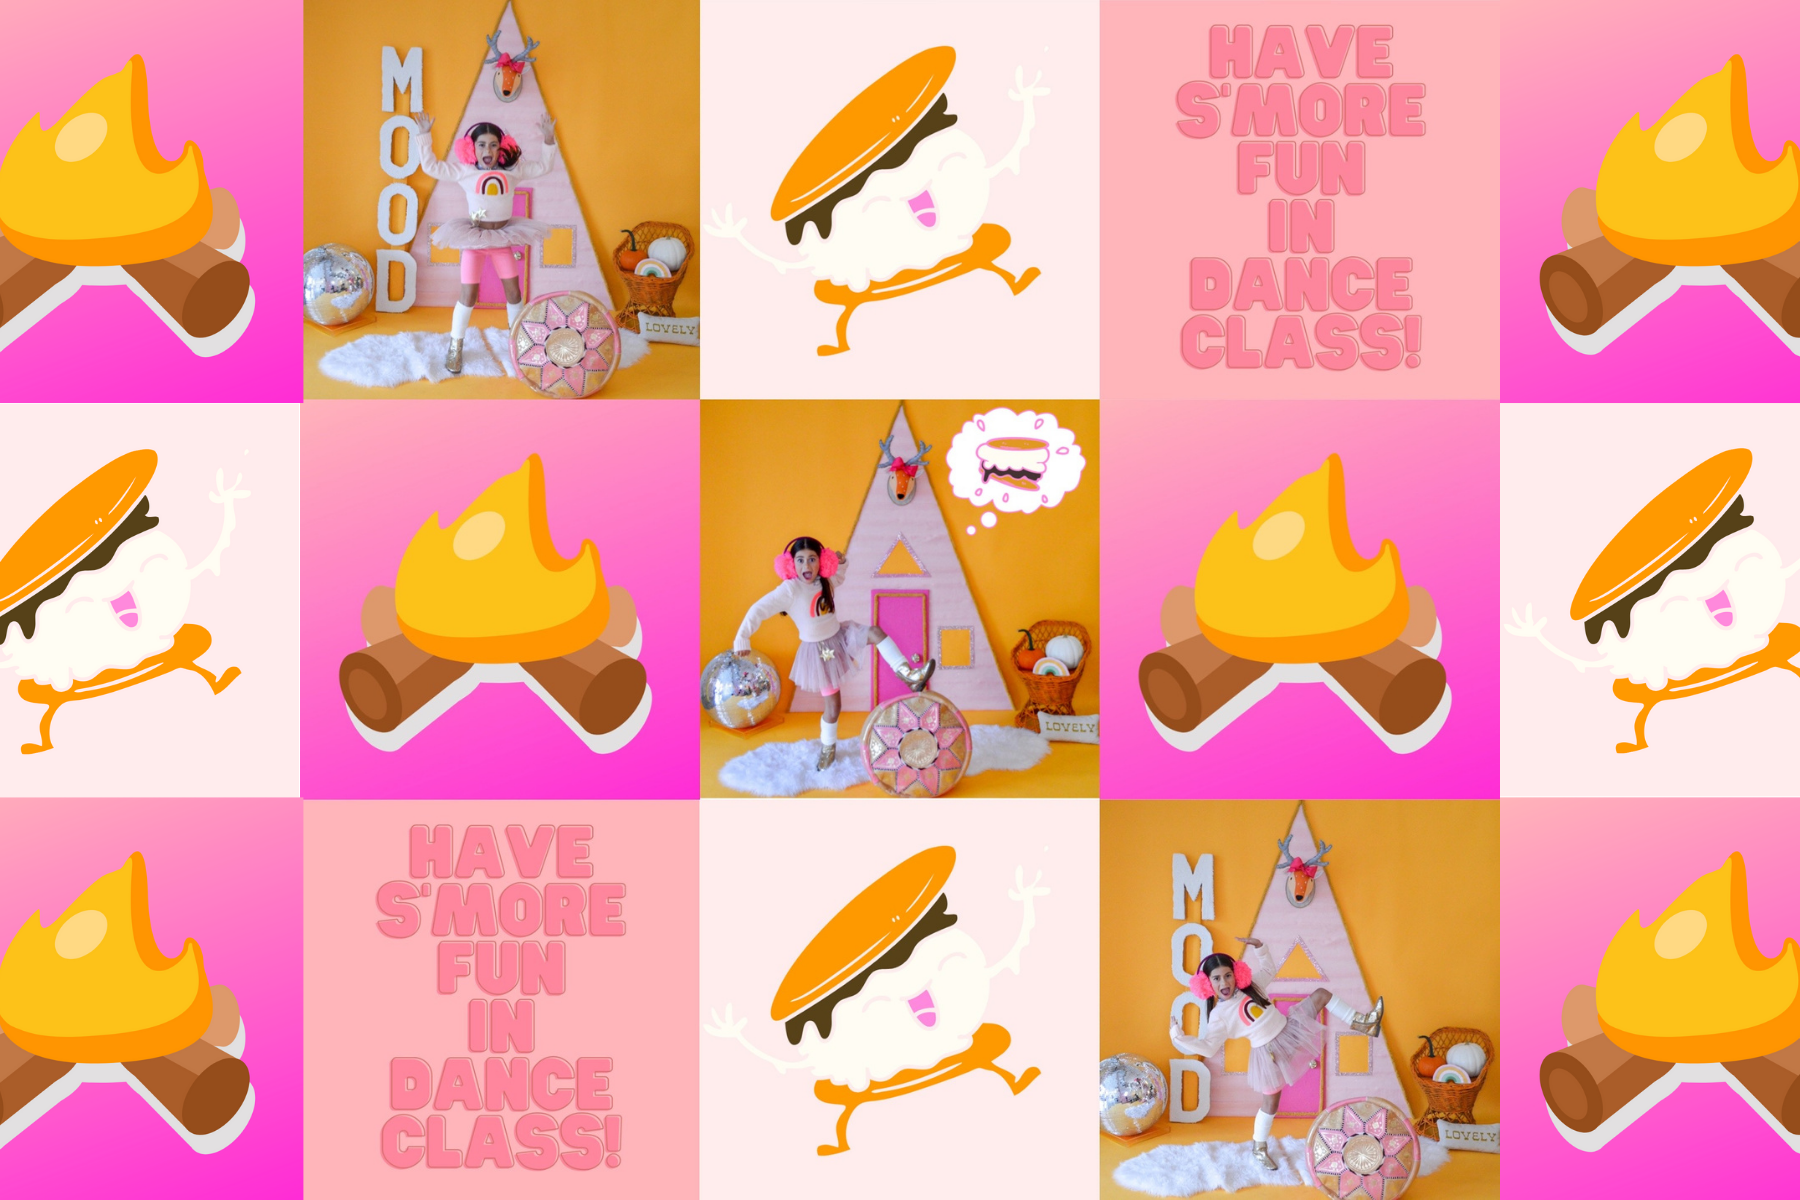 Collage of s'mores graphics and cute dancer posing in front of a paster A-frame backdrop